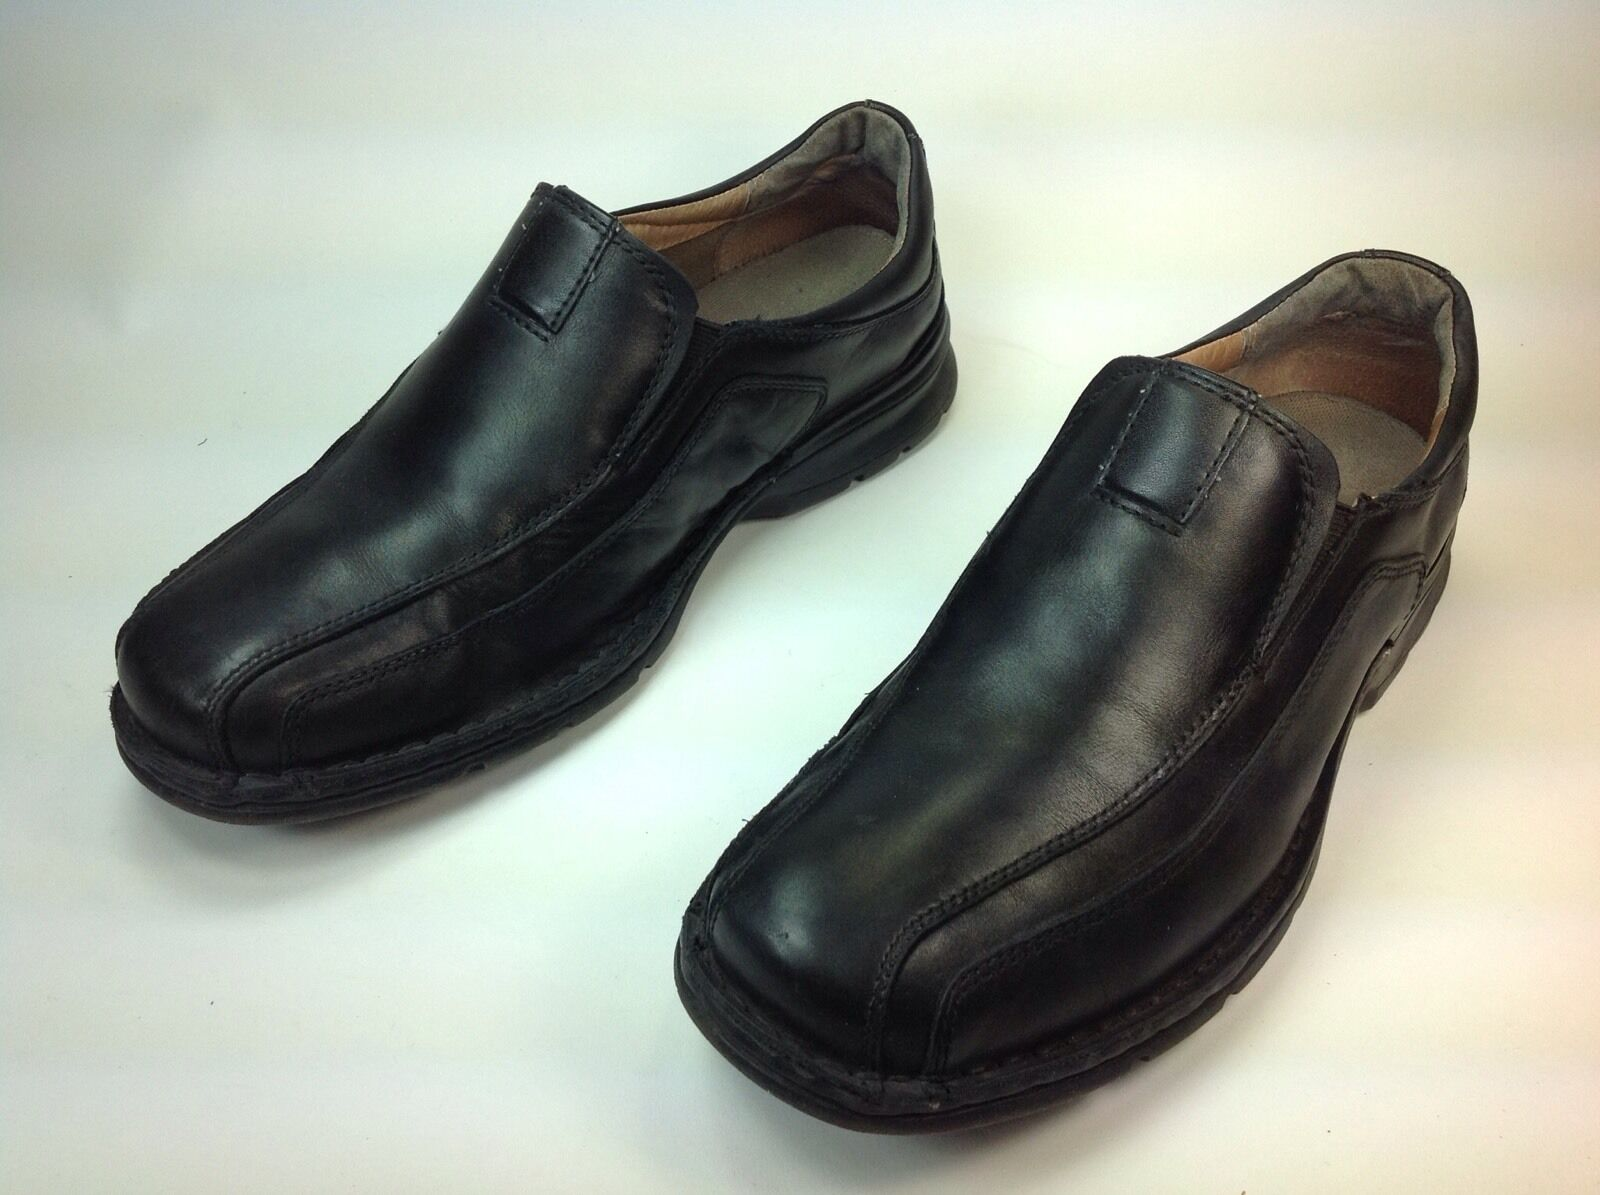 Men's Clarks Black Leather SlipOn Casual Loafer shoes Sz.10.5